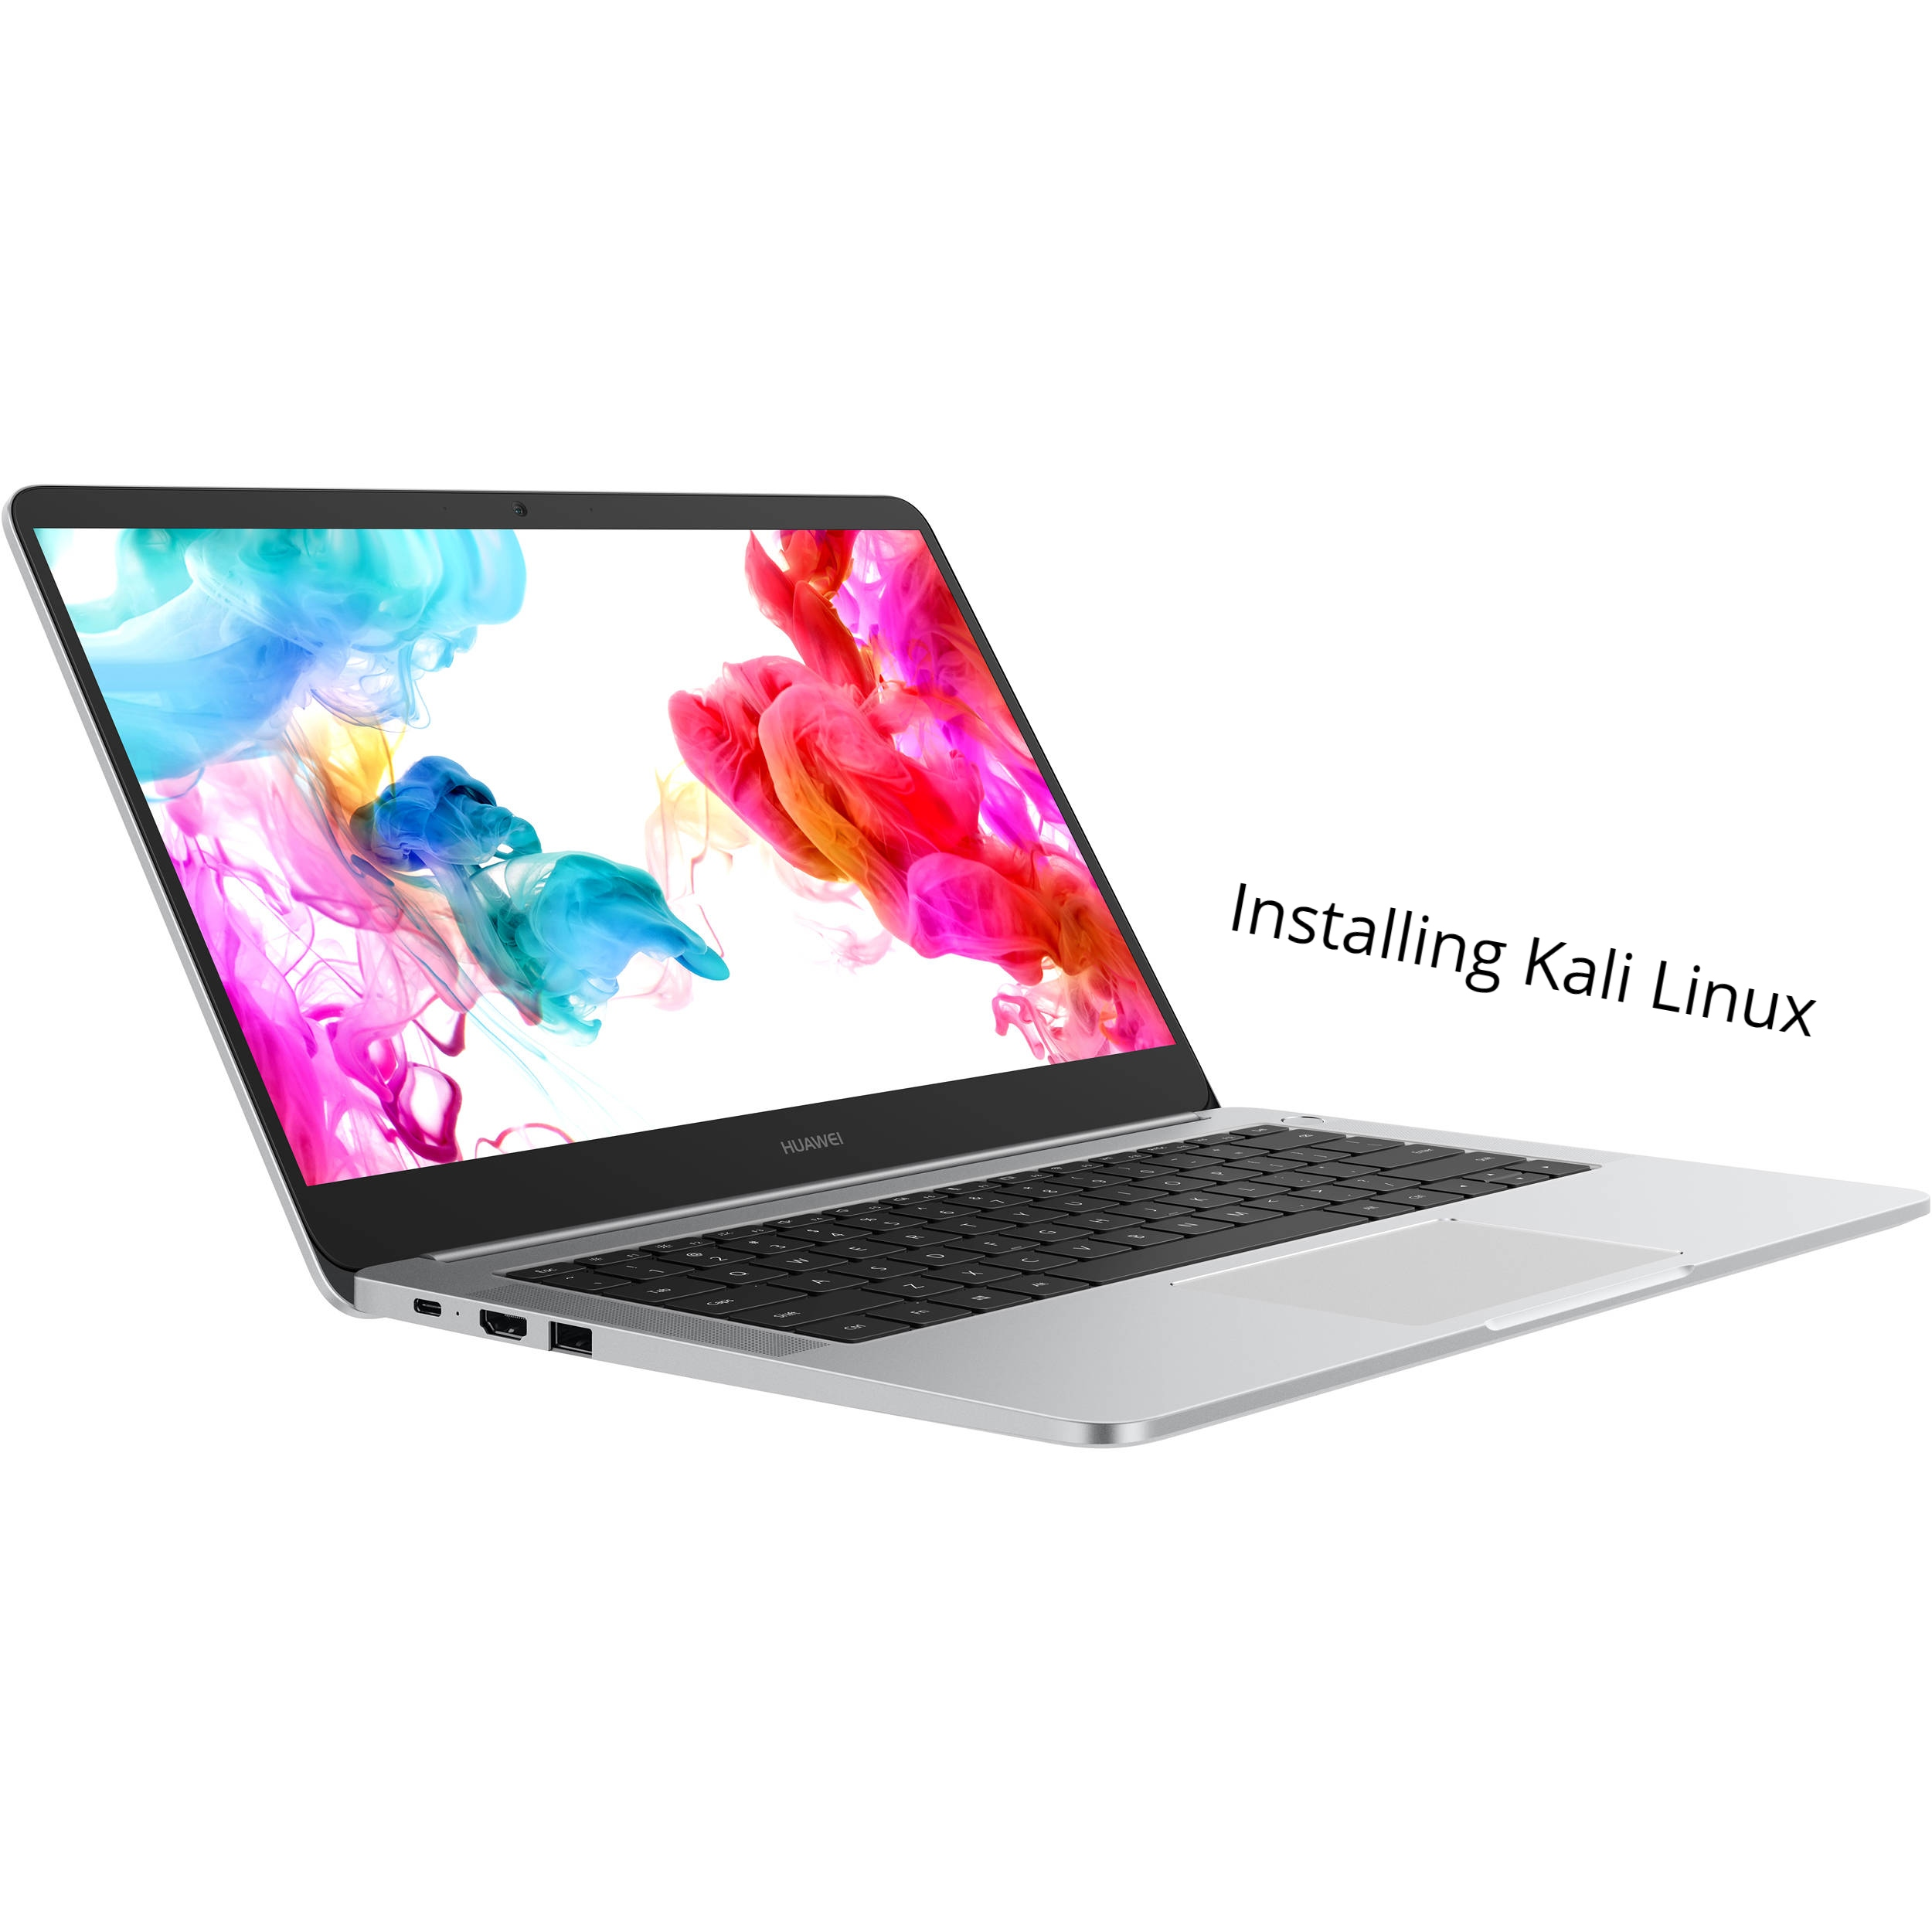 How to install Kali Linux on Huawei Matebook D - infofuge